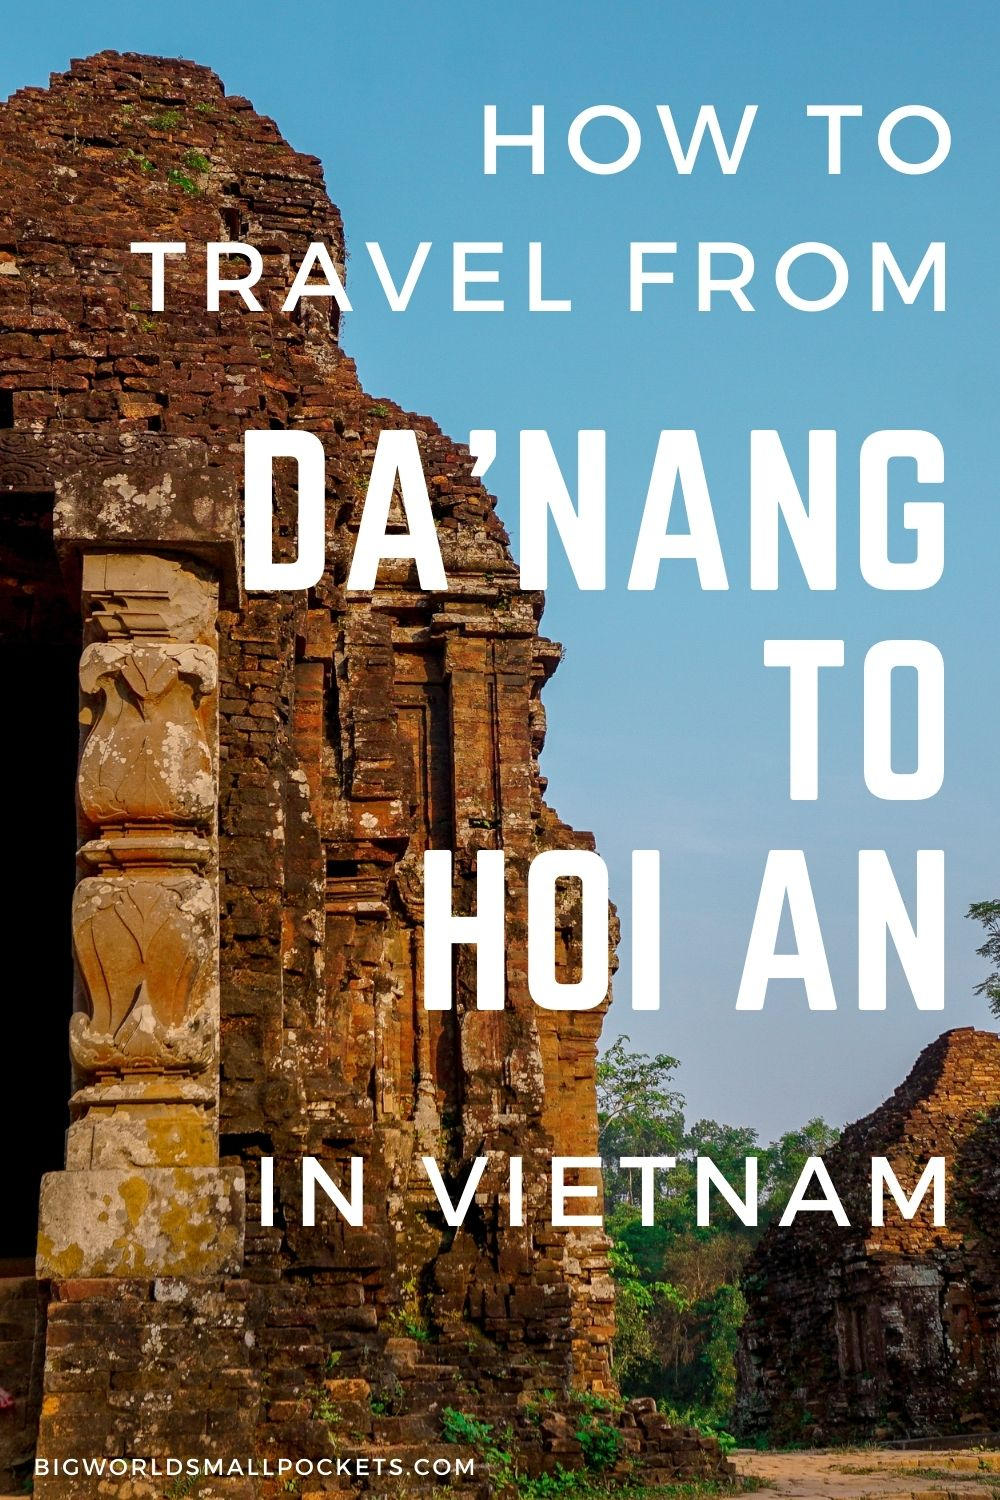 How to Travel Between Da'Nang and Hoi An in Vietnam